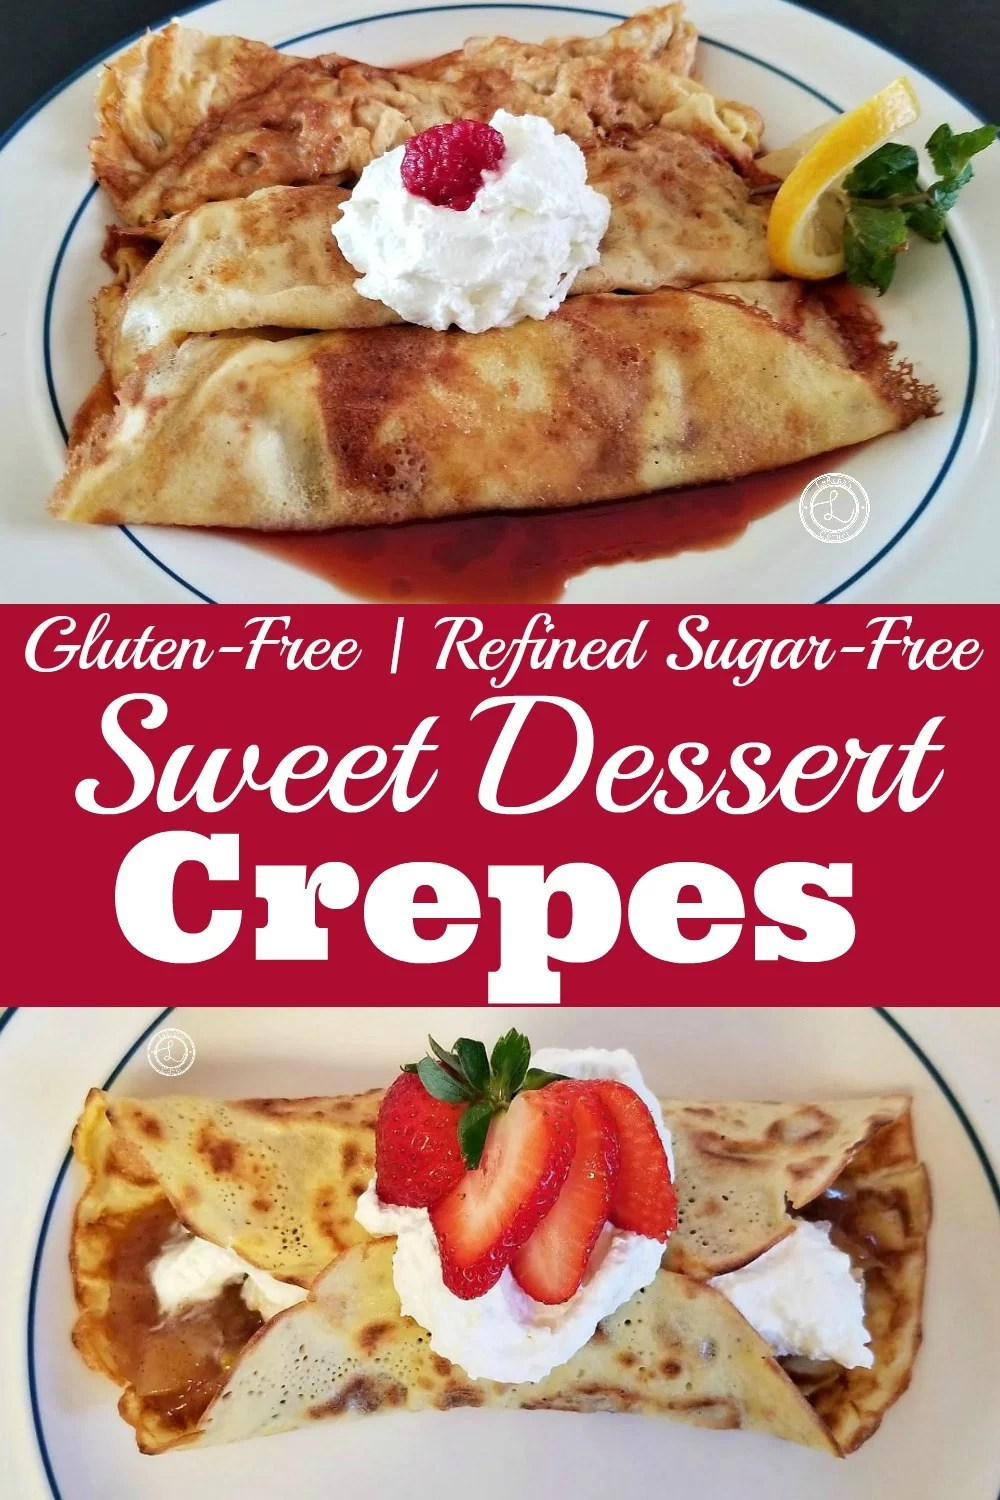 Crepes filled with cinnamon apples topped with strawberry and whipped cream. Crepes filled with raspberries, whipped cream and topped with whipped cream and starwberry slice. WIth a sprig of mint and lemon slice.